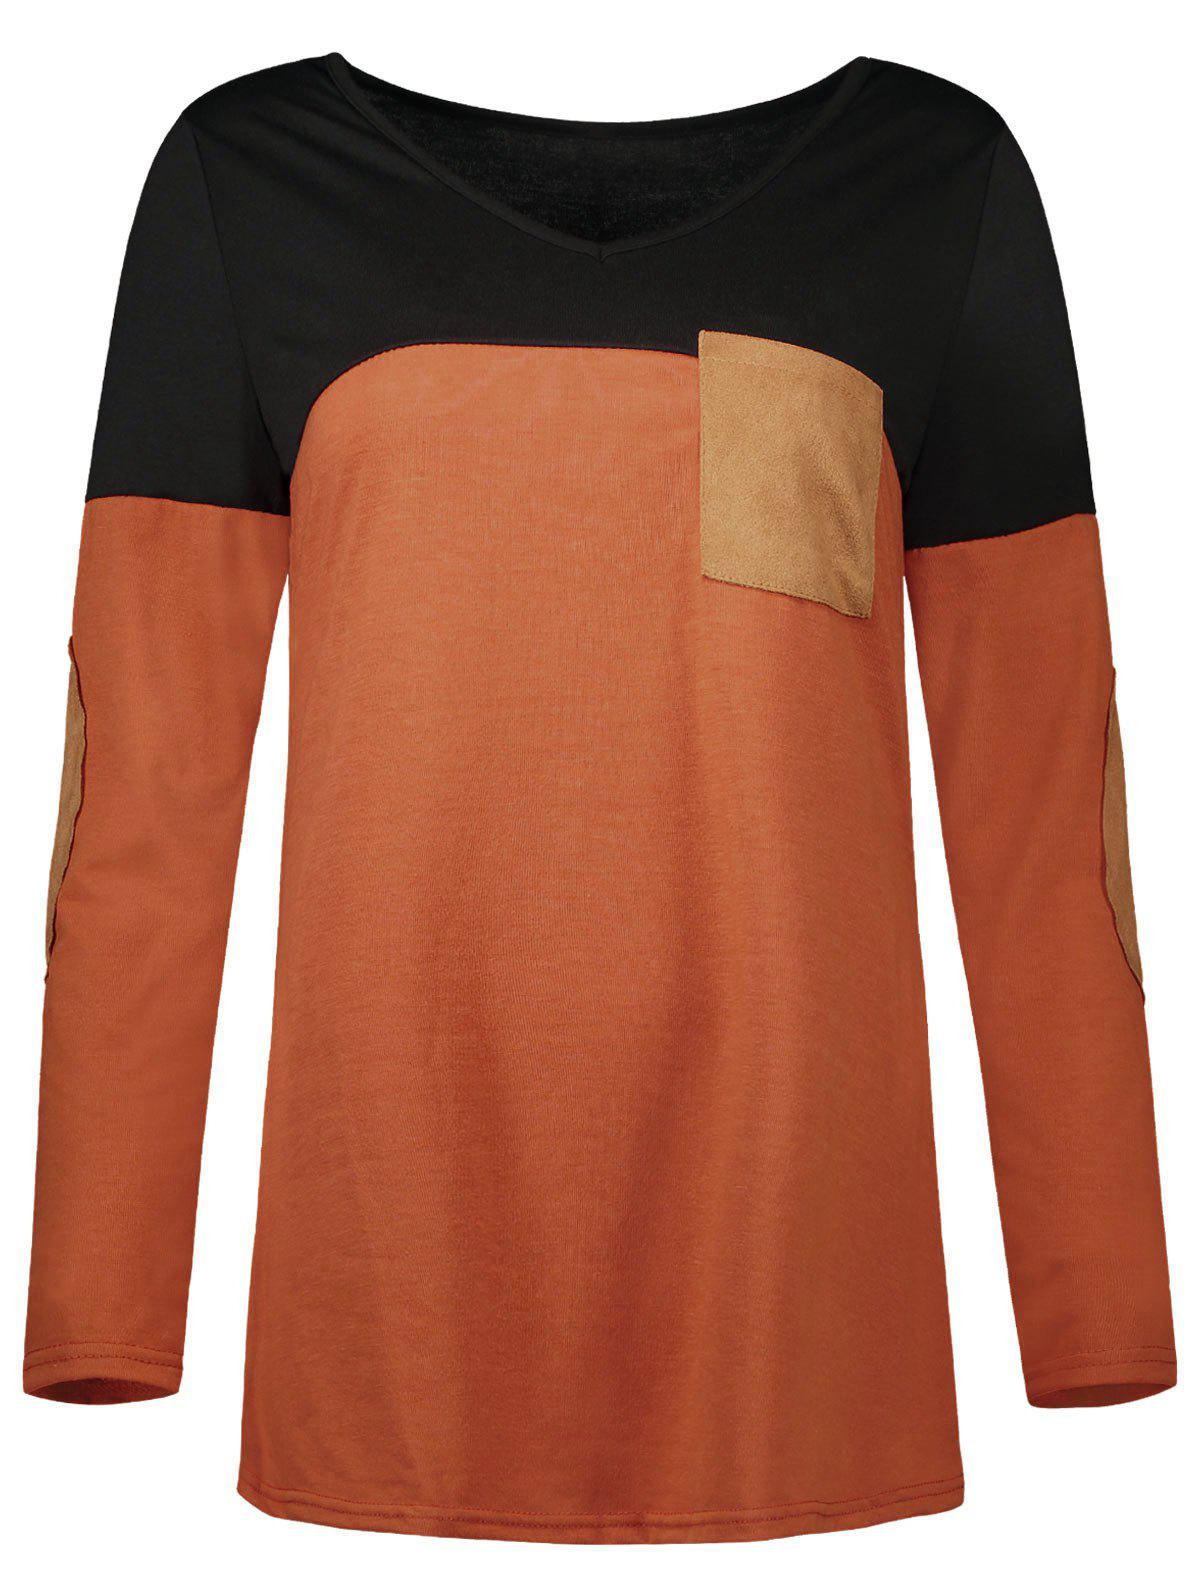 Chic Elbow Patch Color Block Pocket Tee